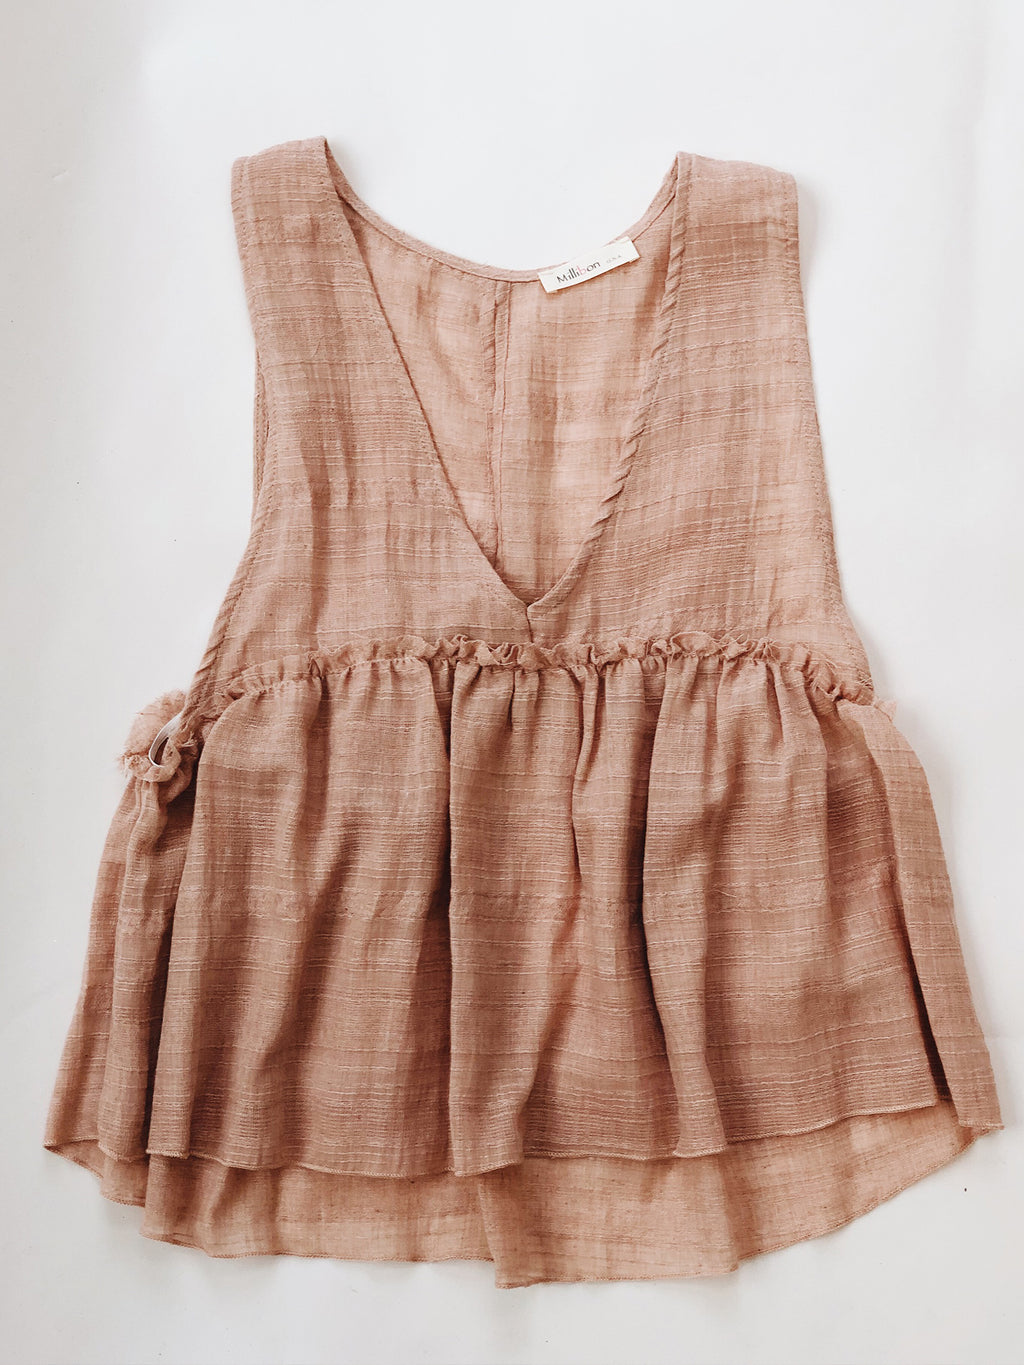 Make Me Blush Top - Stitch And Feather